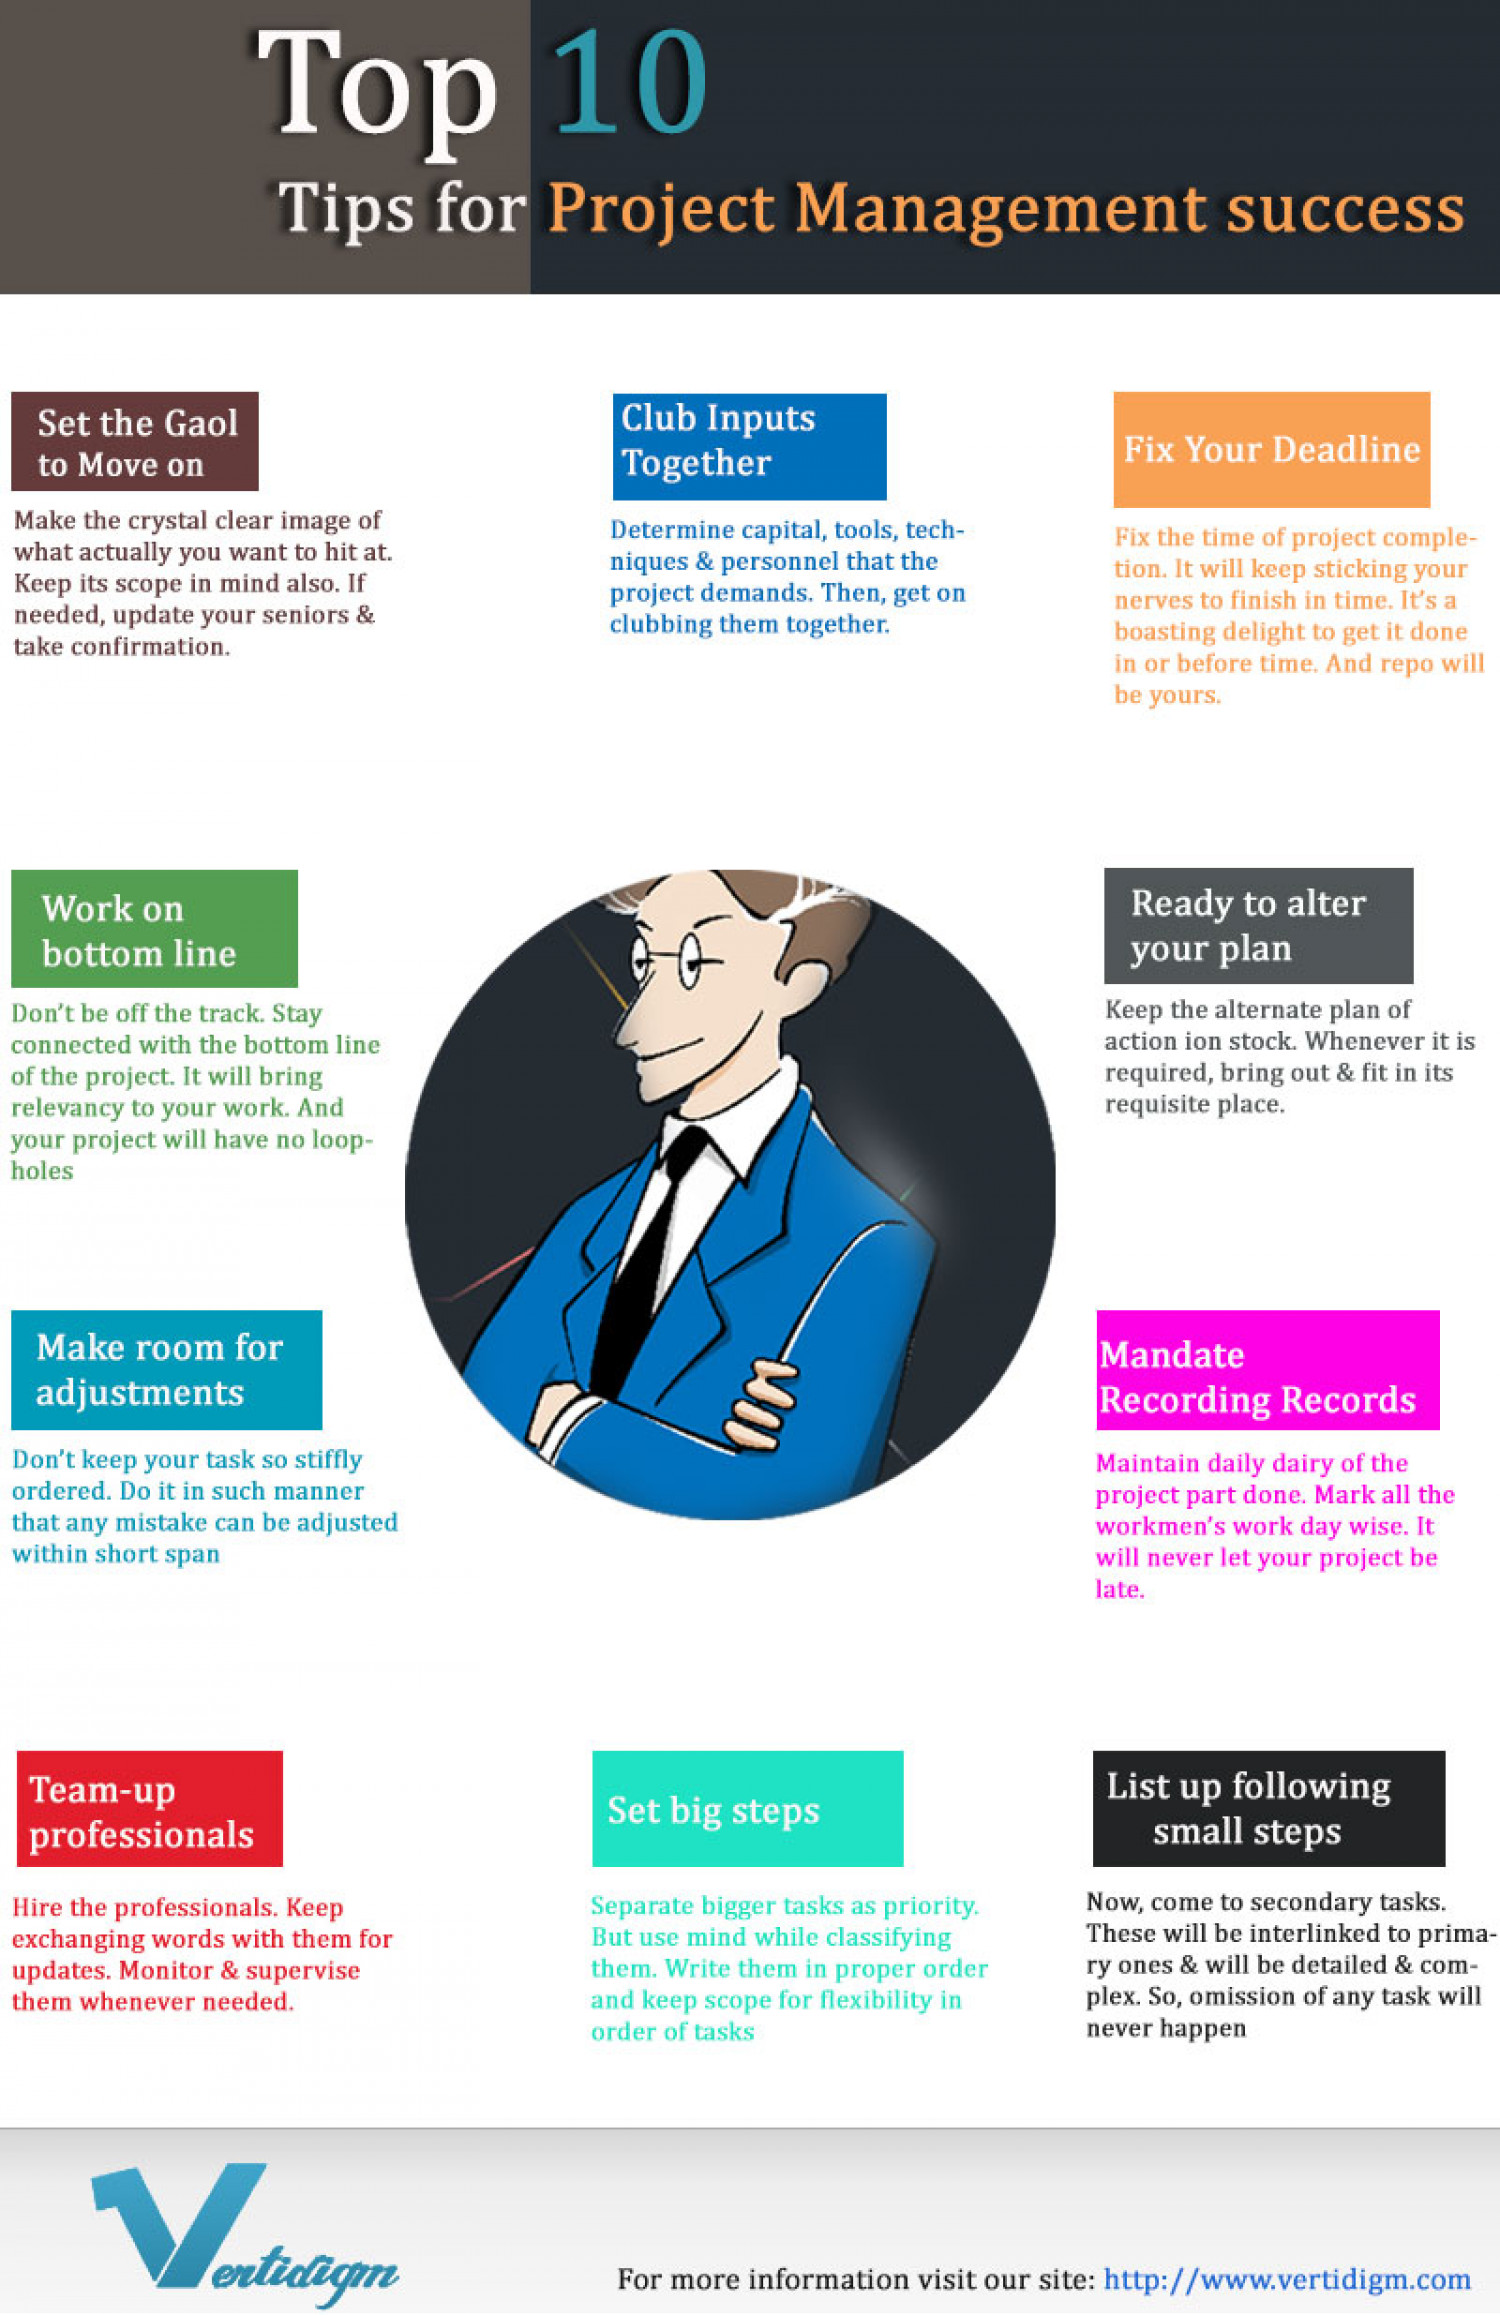 Project Management in a Nutshell  Infographic